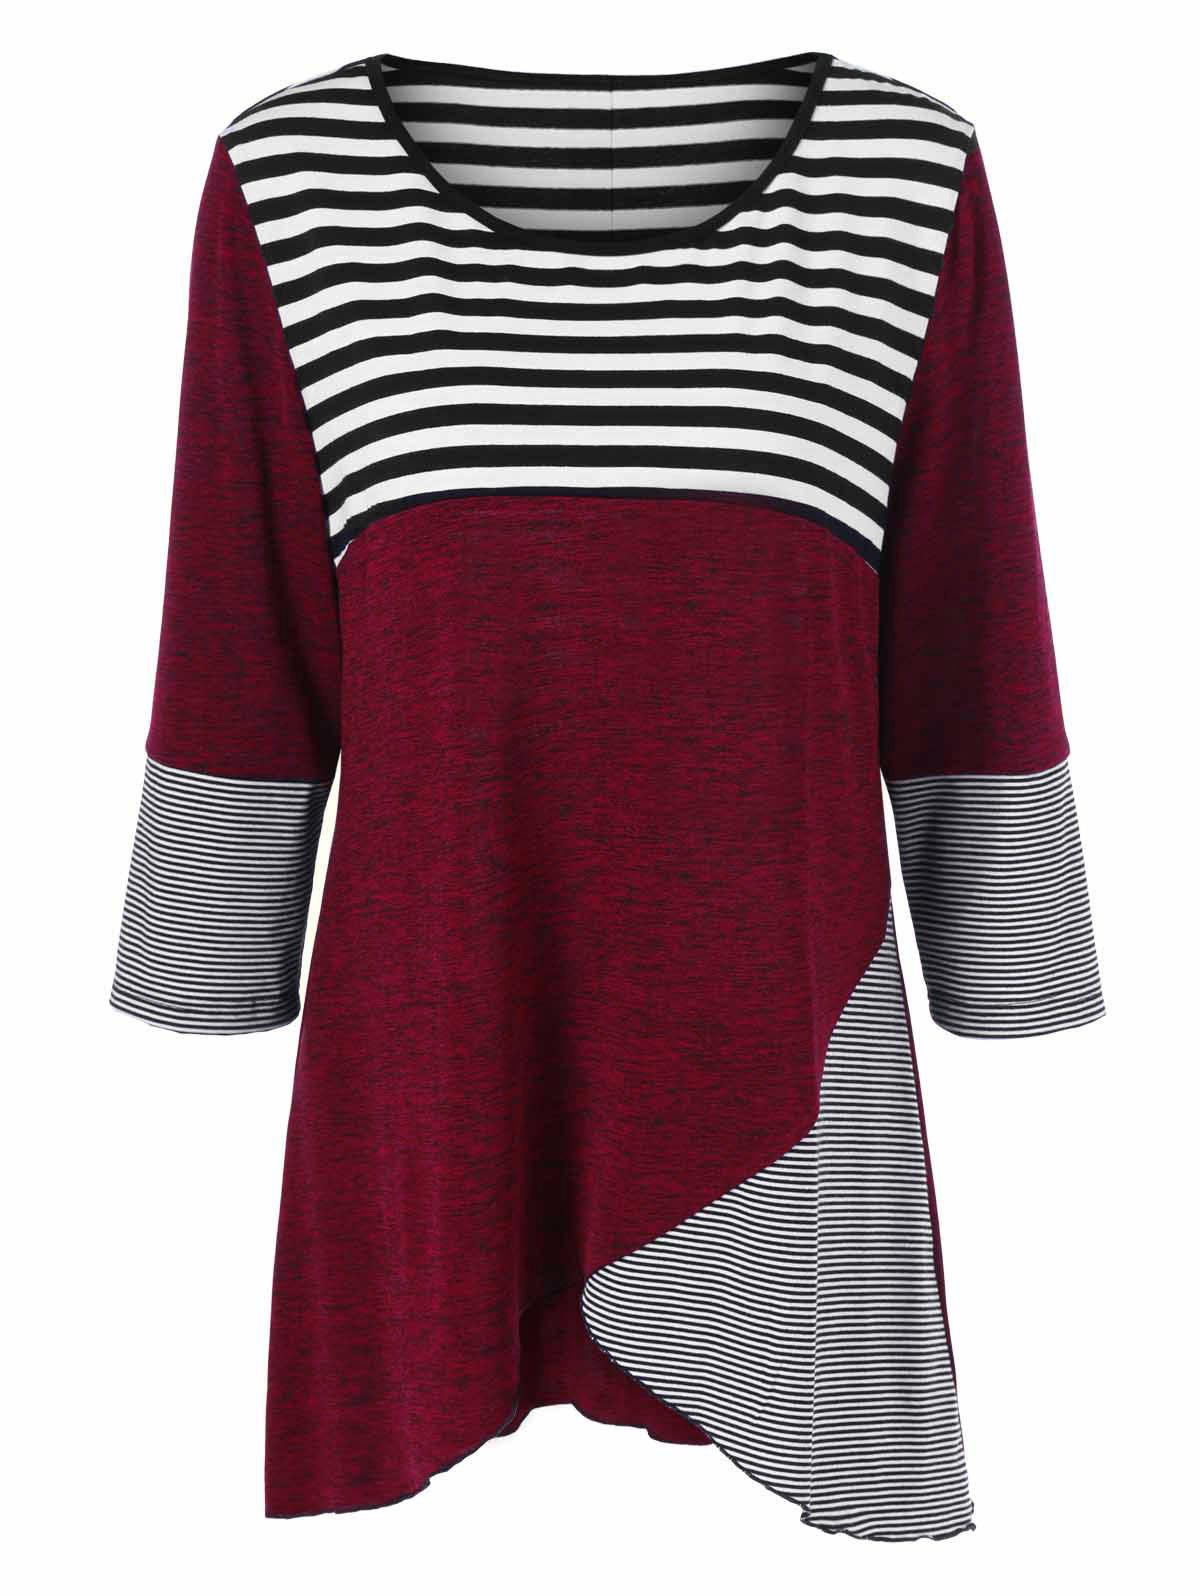 Plus Size Striped Tunic T-Shirt - STRIPE 2XL